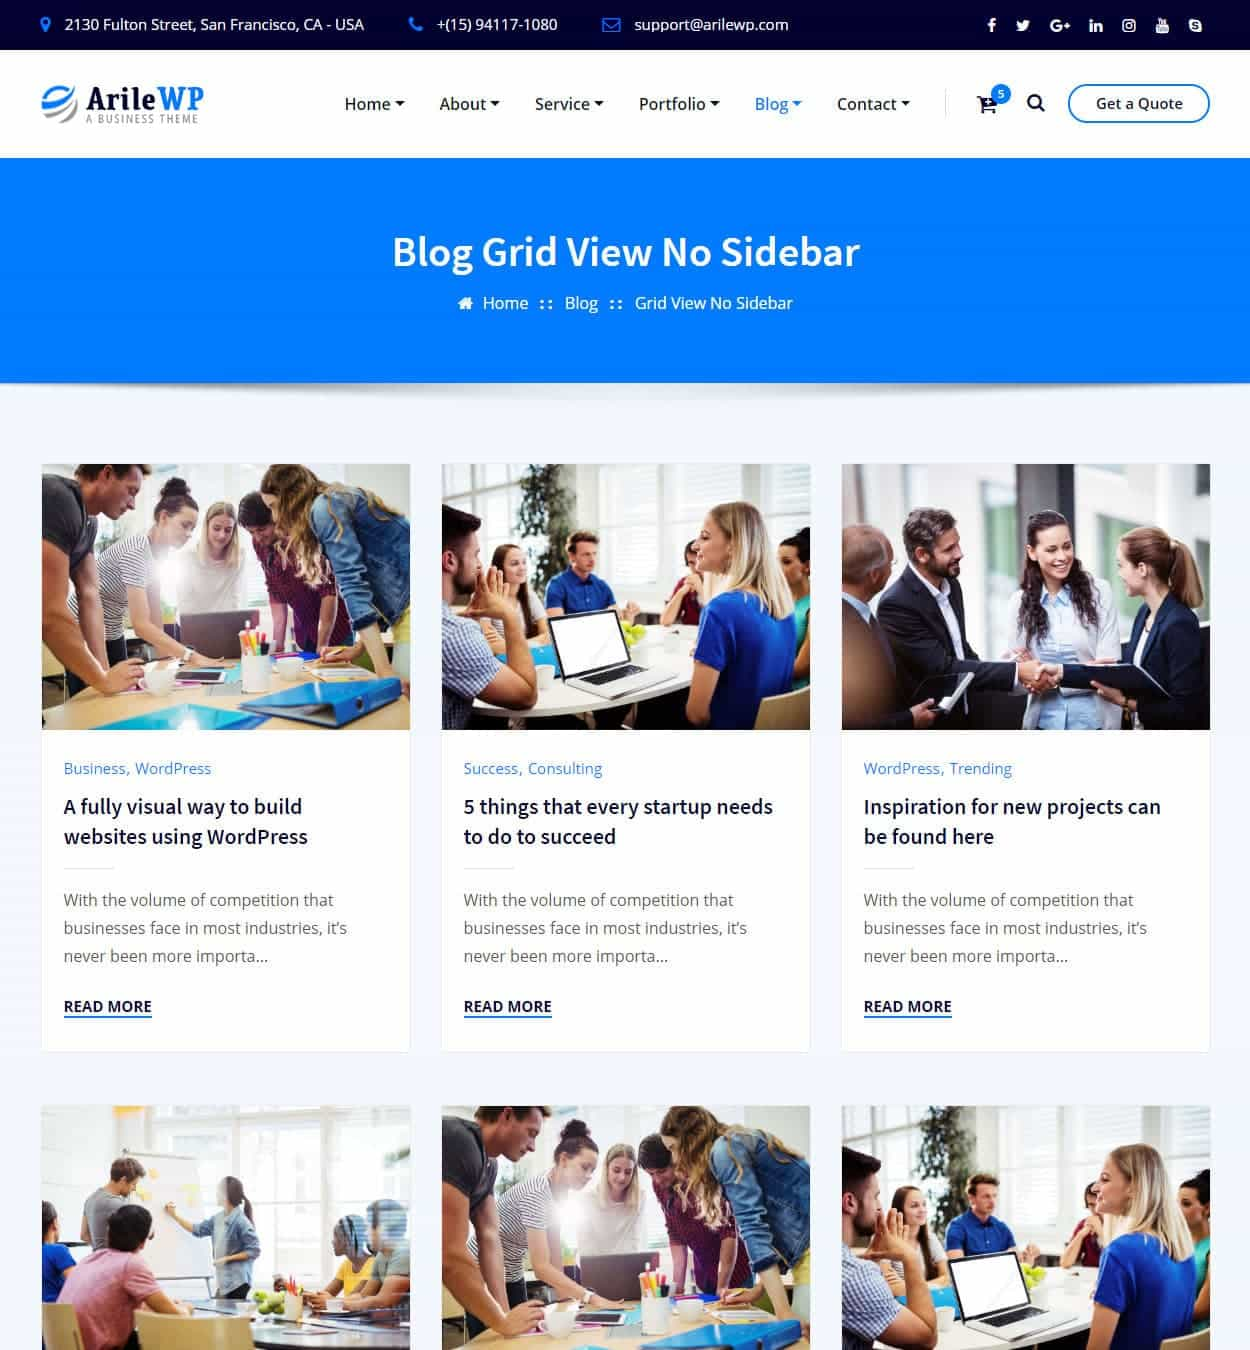 Blog Grid View No/Sidebar